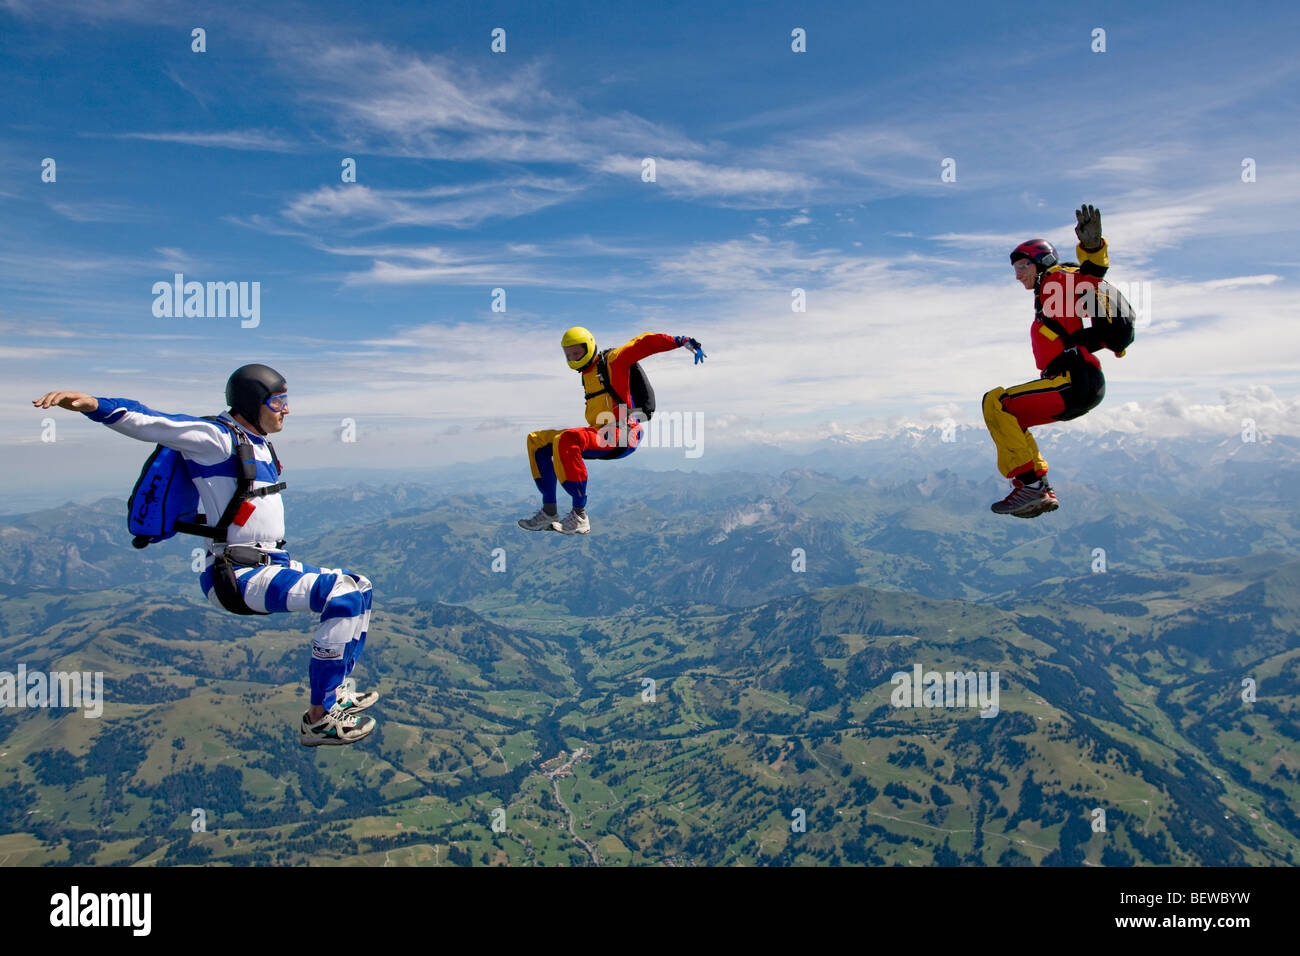 three people doing parachute jumping, full shot - Stock Image